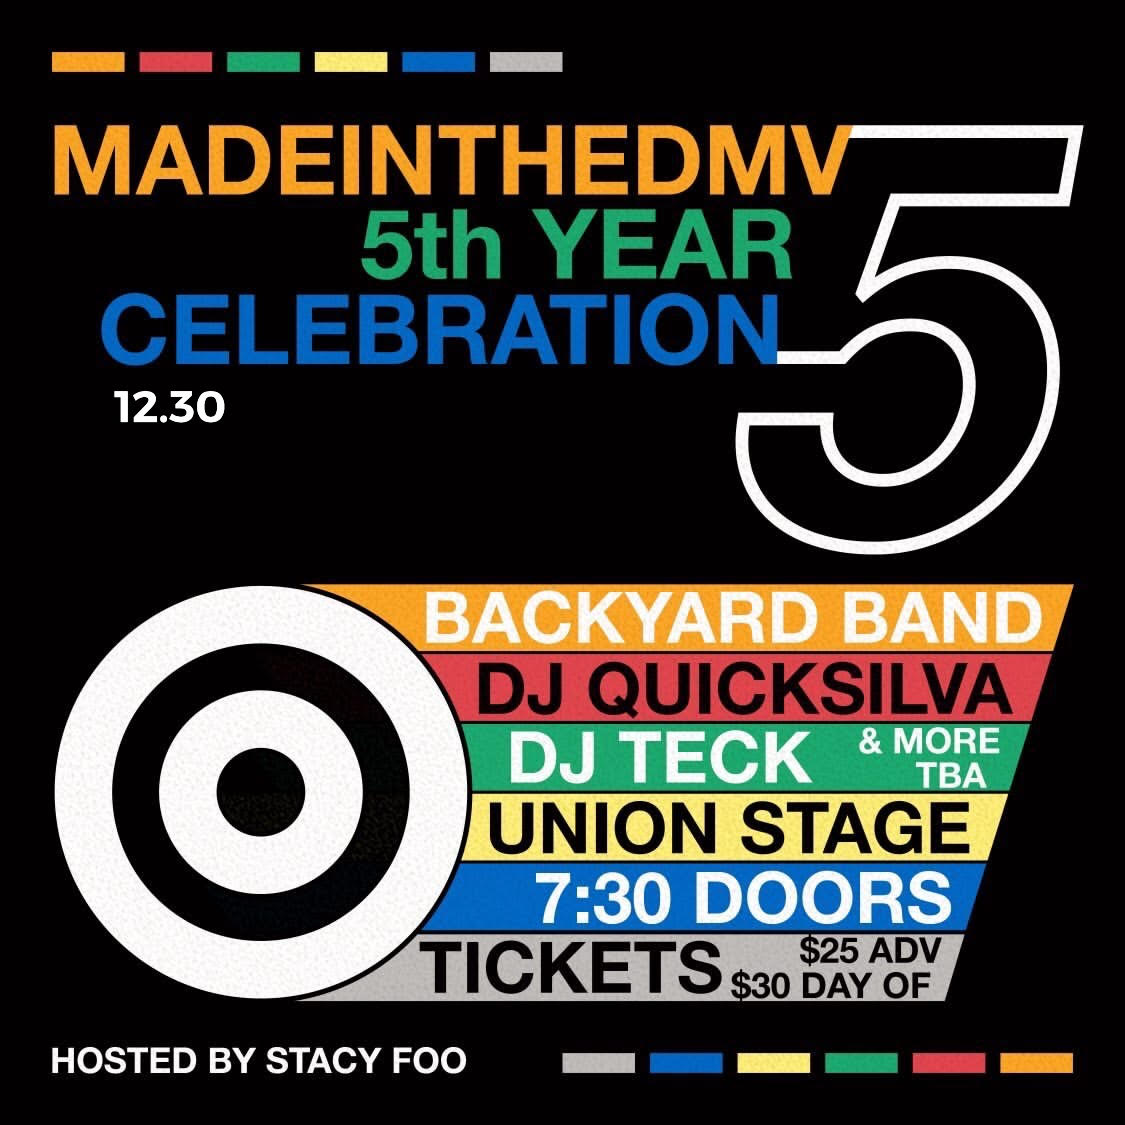 WE TURN 5. COME CELEBRATE WITH US